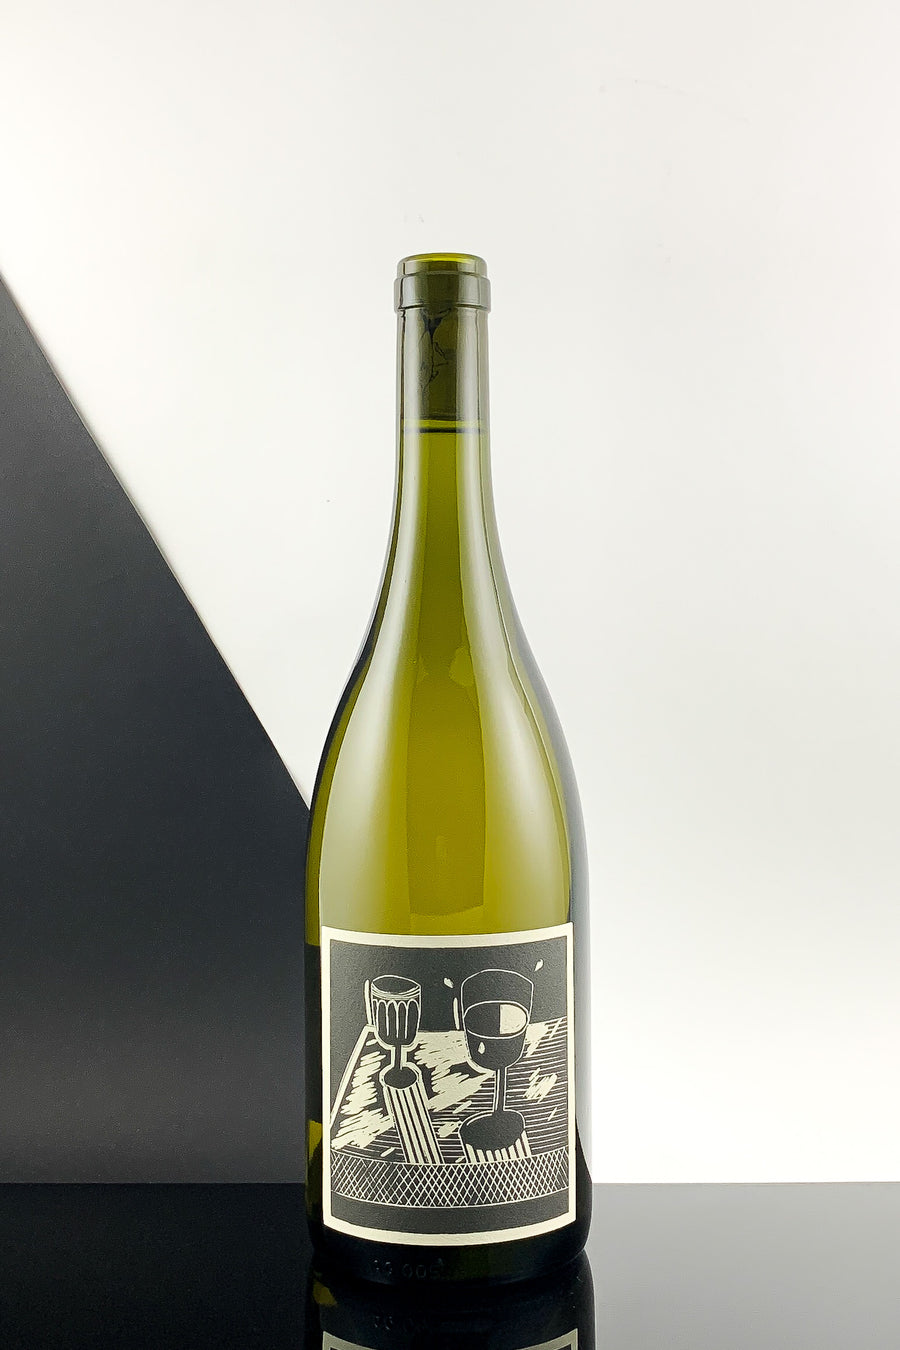 Little Reddie Single Year Release Woori Yallock Sauvignon Blanc 2019